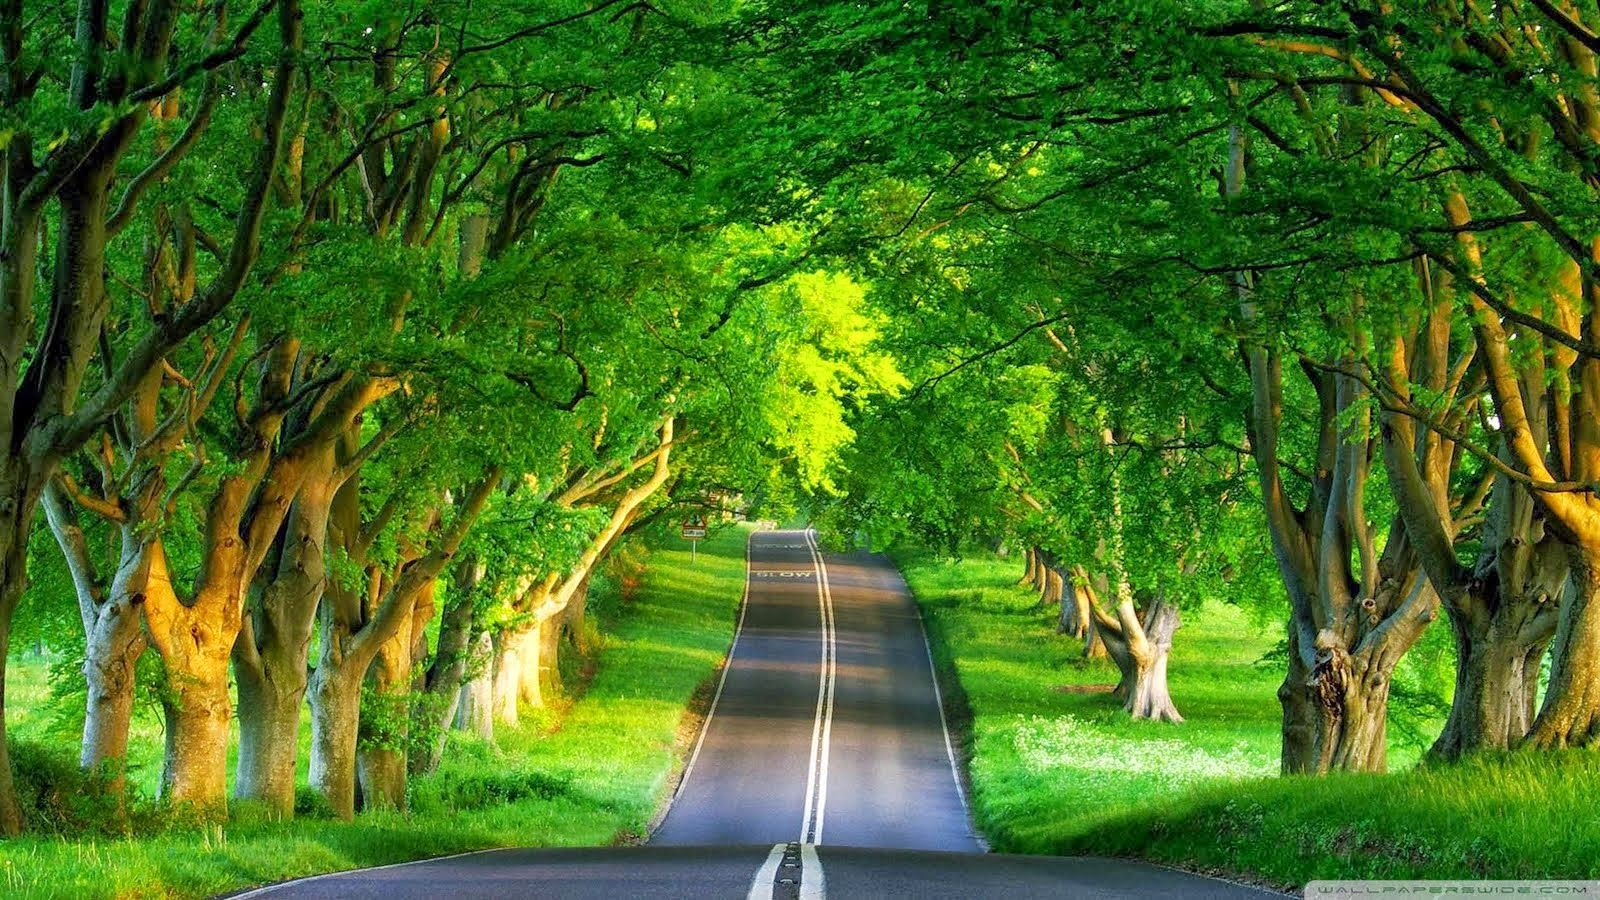 Most Beautiful Green Nature Wallpapers In The World Images Qg1 Jpg 1600 900 Nature Desktop Hd Nature Wallpapers Scenery Wallpaper